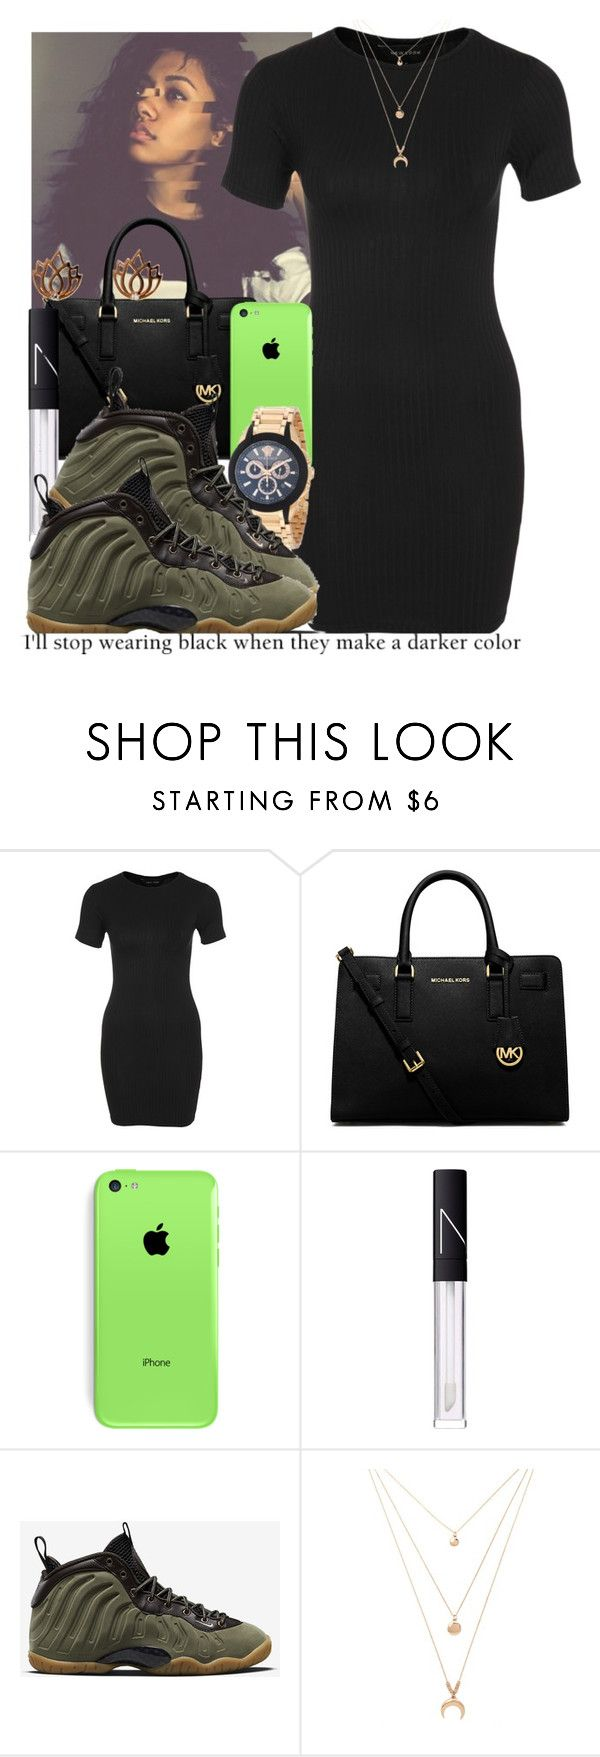 """""""Kittens"""" by jjaysuave ❤ liked on Polyvore featuring New Look, MICHAEL Michael Kors, Versace, NARS Cosmetics, NIKE, Forever 21, Melissa Odabash and Kaylee"""